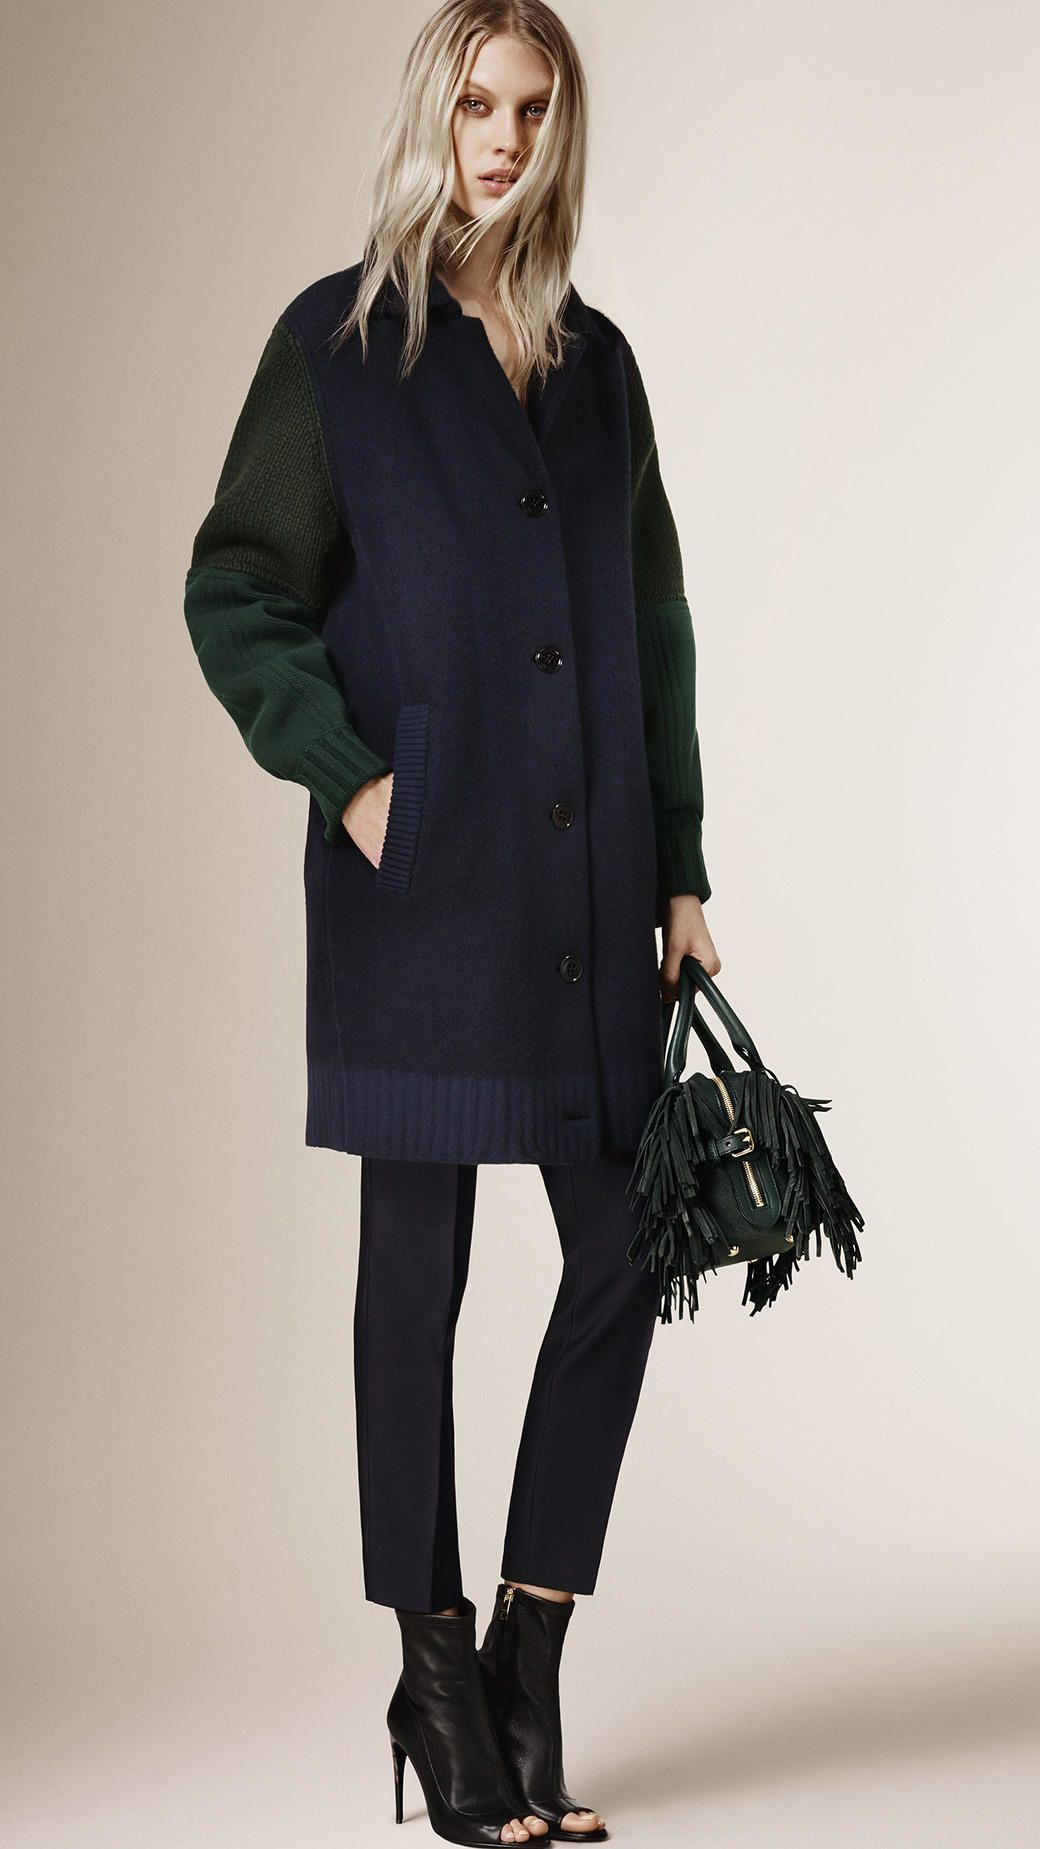 1df16a8e5bd6 Buy Burberry Women s Blue Knitted Cardigan Coat With Contrast Sleeves